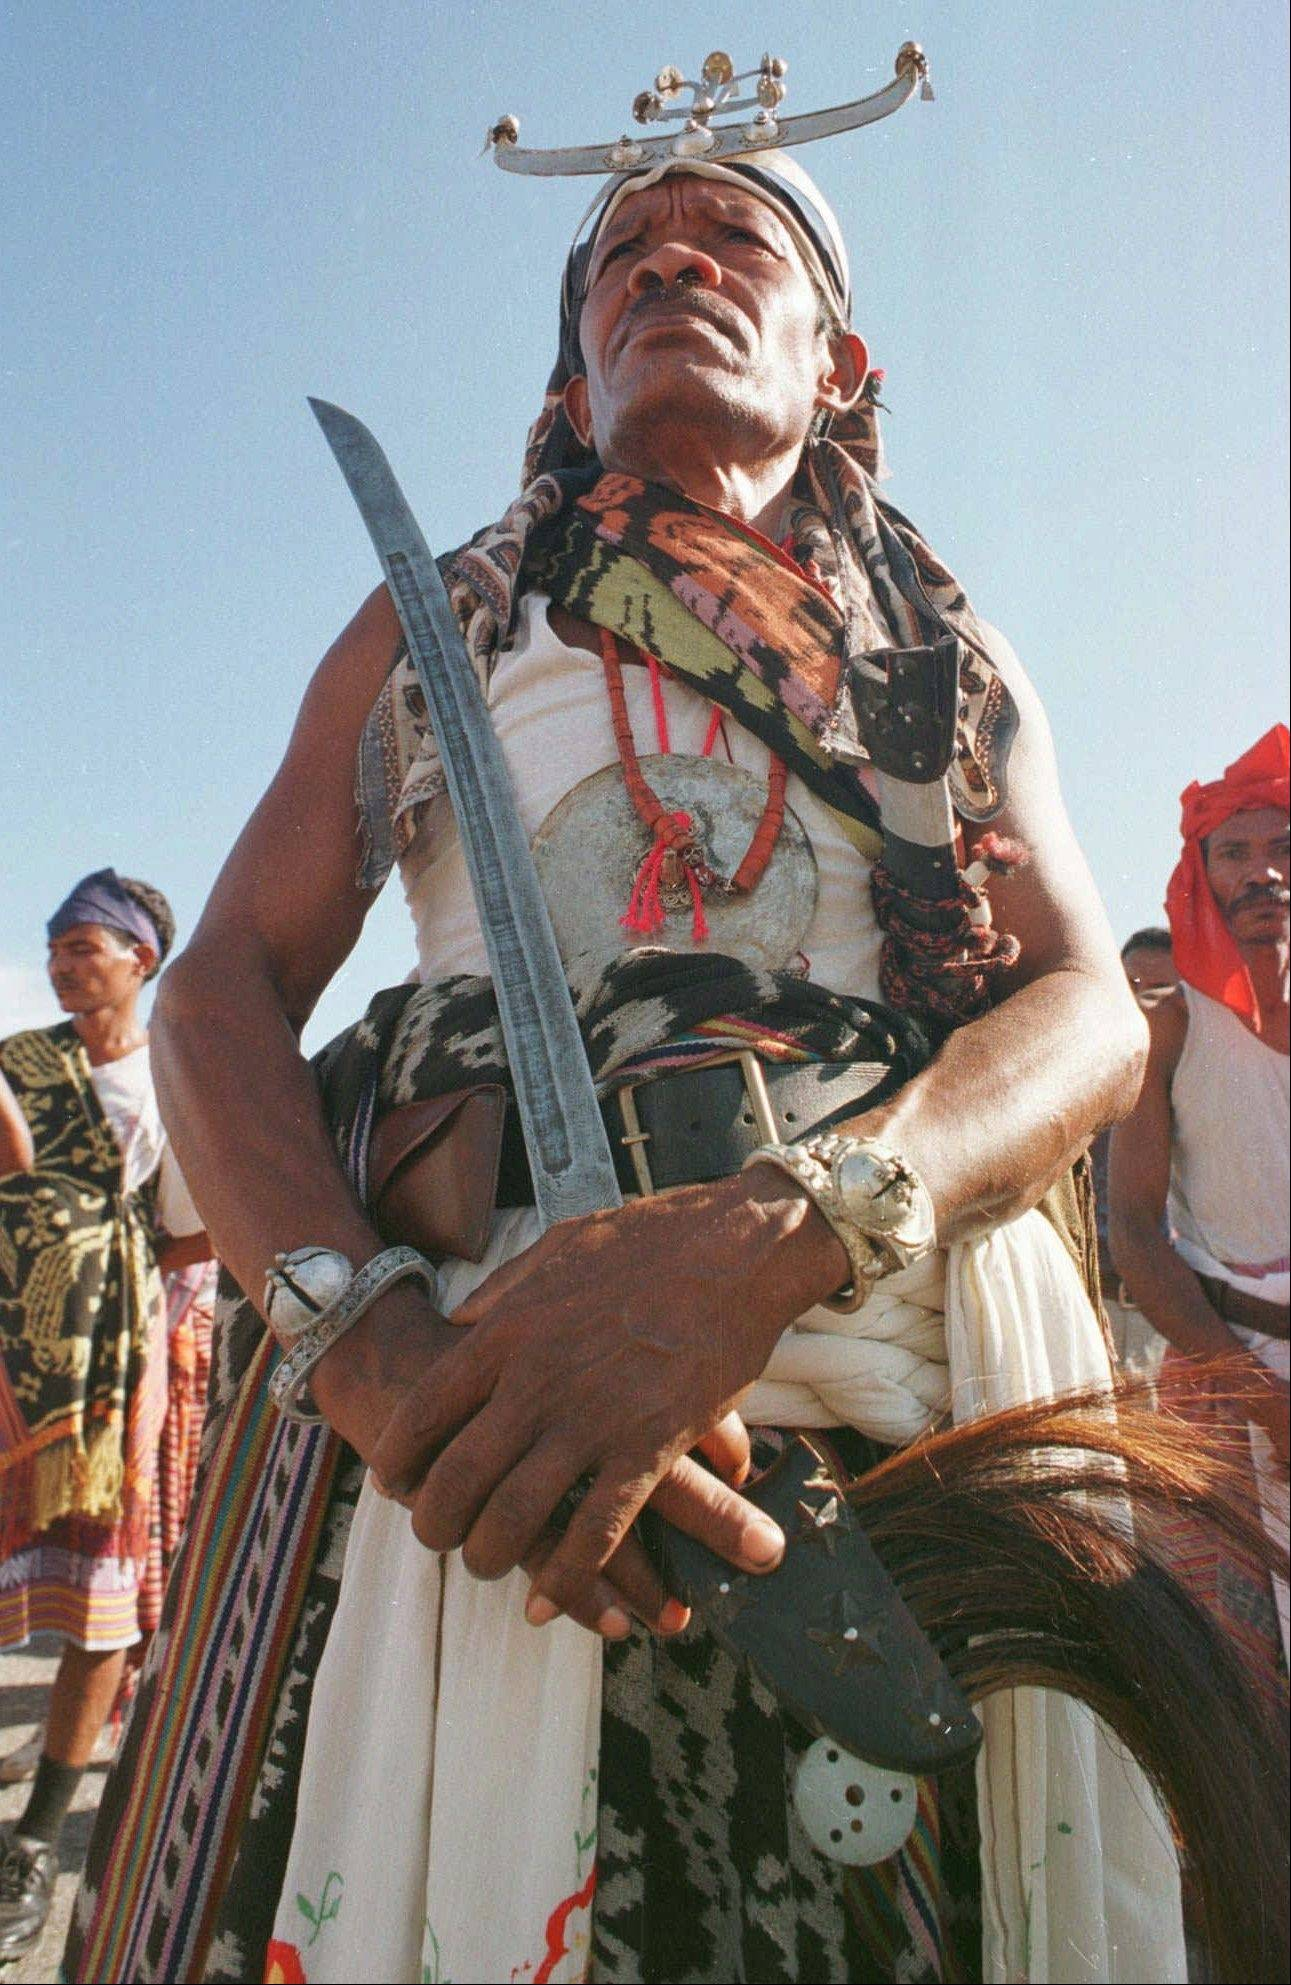 An East Timorese man wearing traditional tribal clothing stands at attention during Integration Day celebrations at the governor's office in Dili, about 1,250 miles east of Jakarta. The annual celebration marked the former Portuguese colony's annexation by Indonesia in 1976 following its invasion a year earlier. East Timor became a sovereign state in 2001.